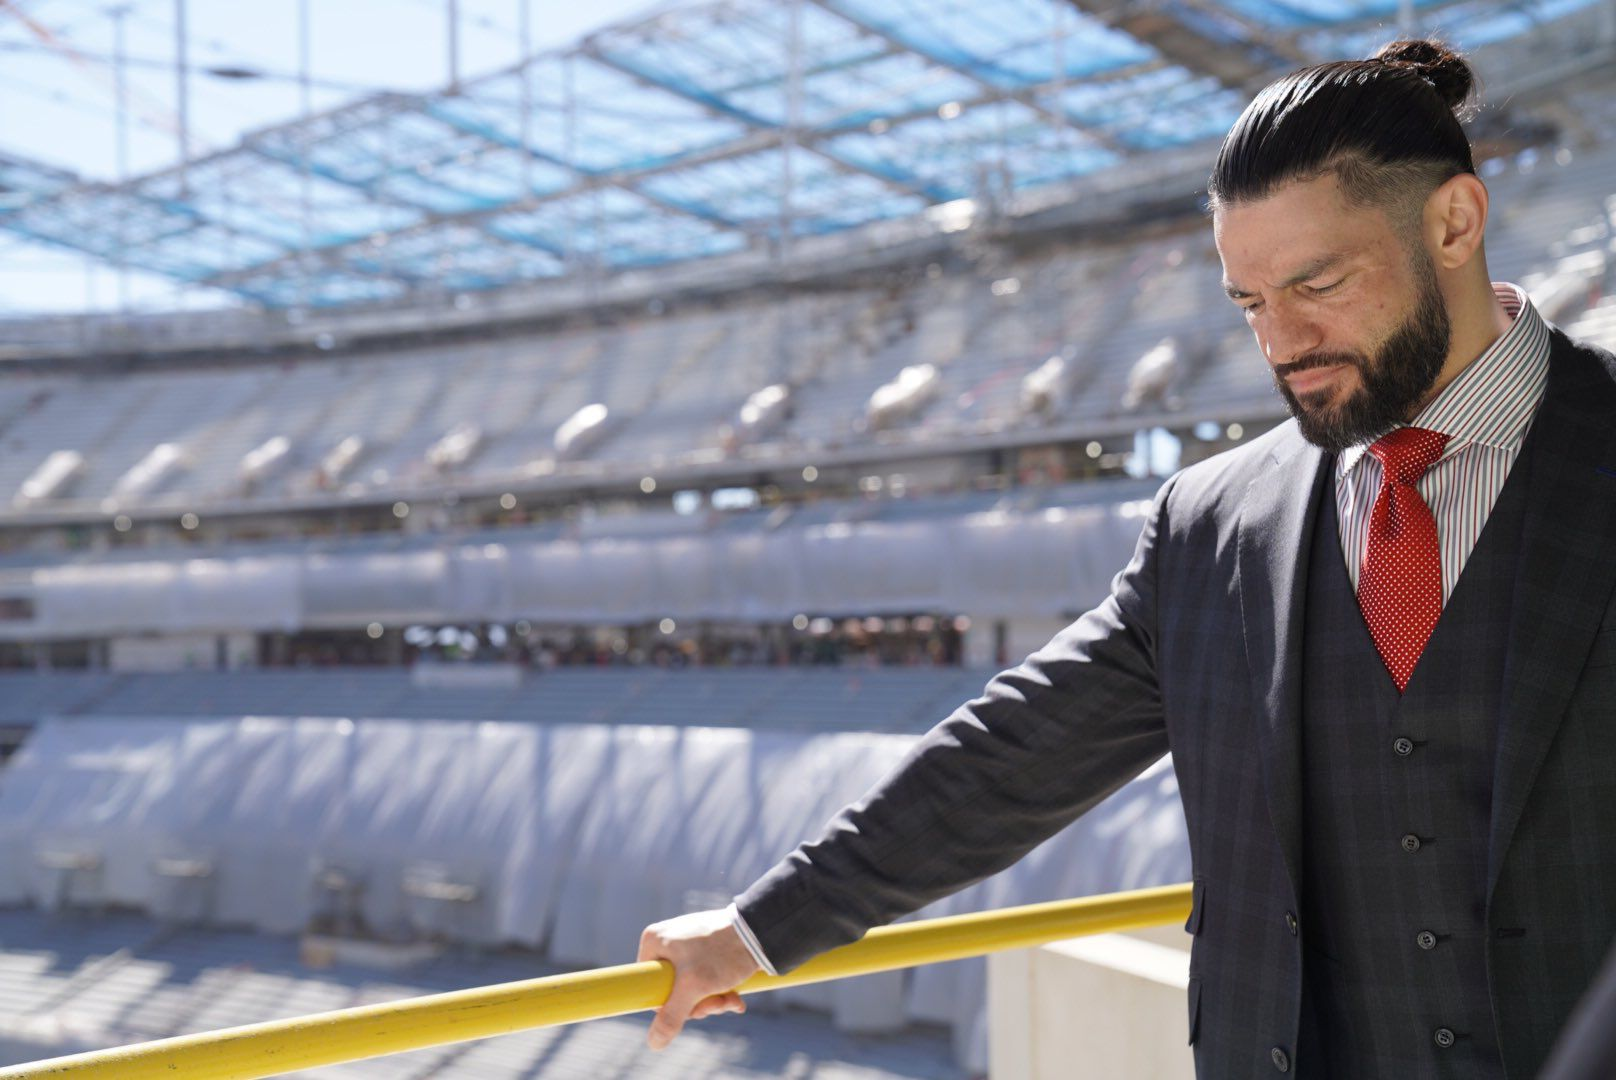 1,668 Likes, 20 Comments - Roman Reigns WWE